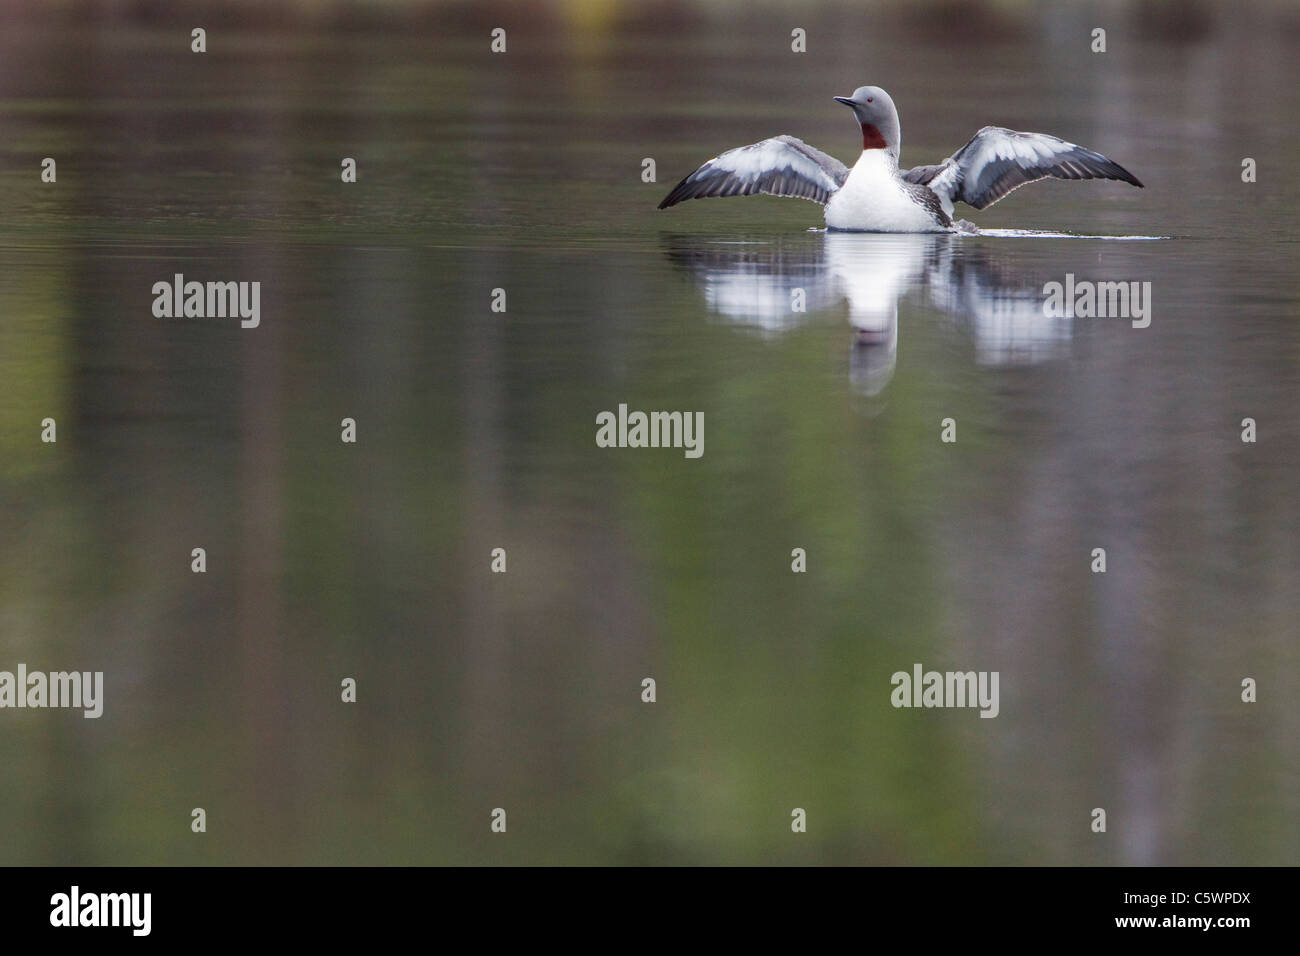 Red-throated Diver (Gavia stellata), adult wing-stretching on breeding loch in spring. Scotland, Great Britain. - Stock Image